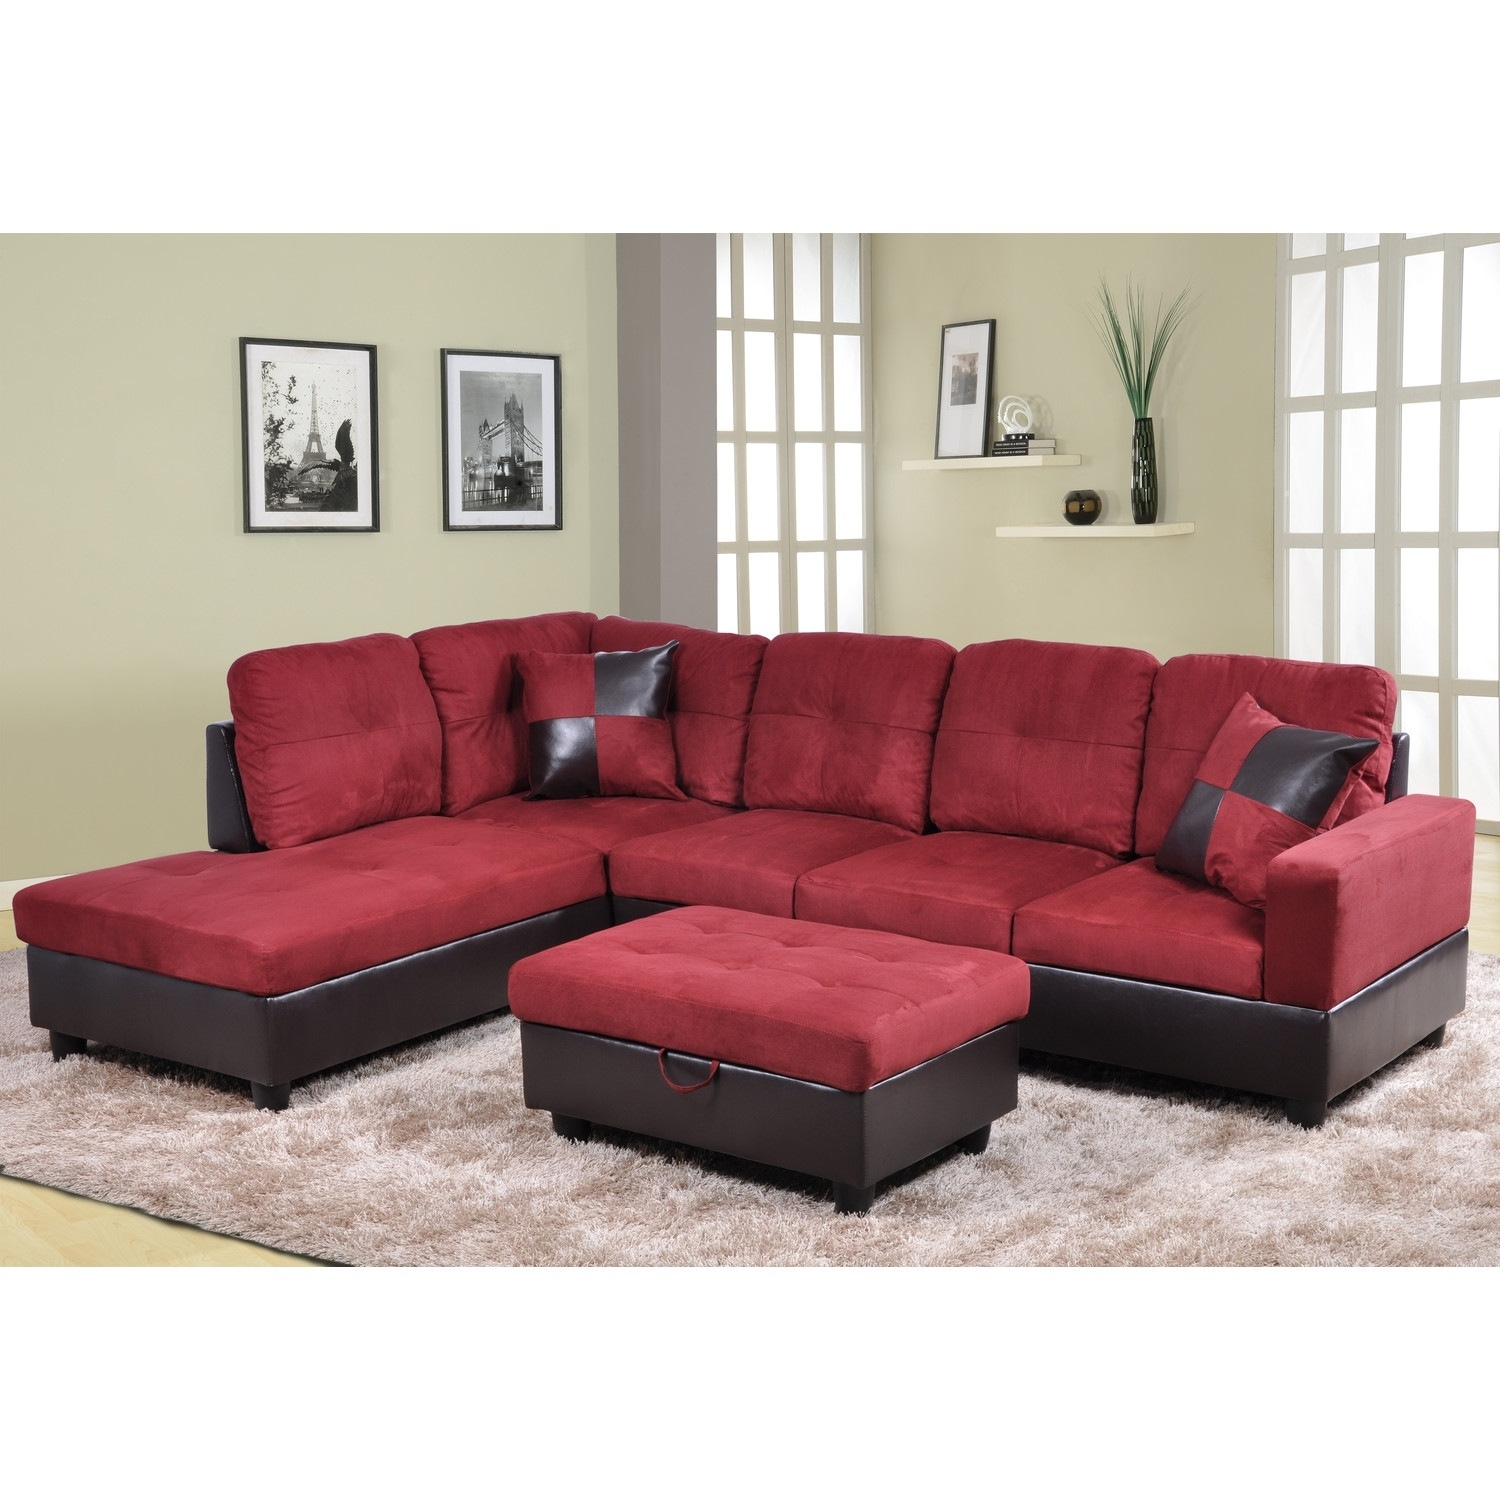 inexpensive sectional sofas for sale best sofa bed new york 2018 latest at sears ideas